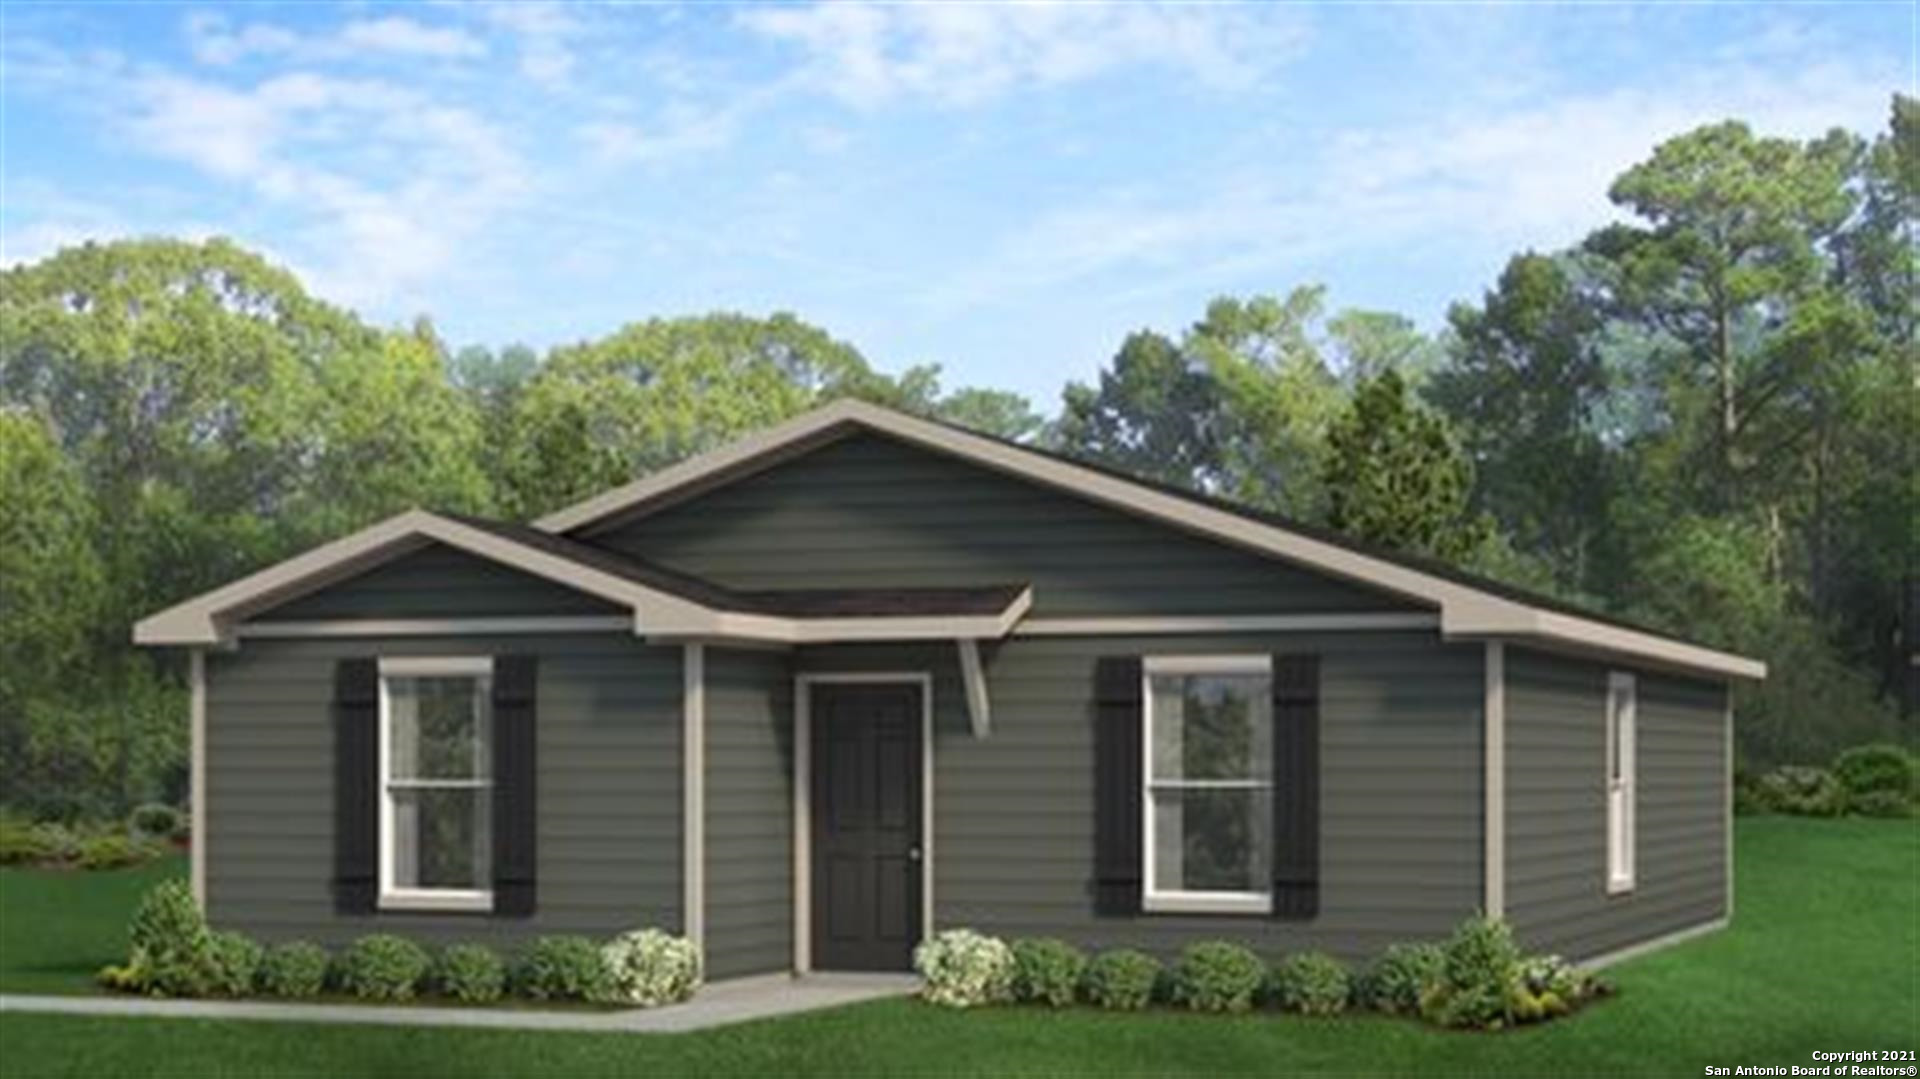 MLS# 1506348 - Built by Ameritex Homes - March completion! ~ 3 bedrooms; 2 bathrooms; two motion ext